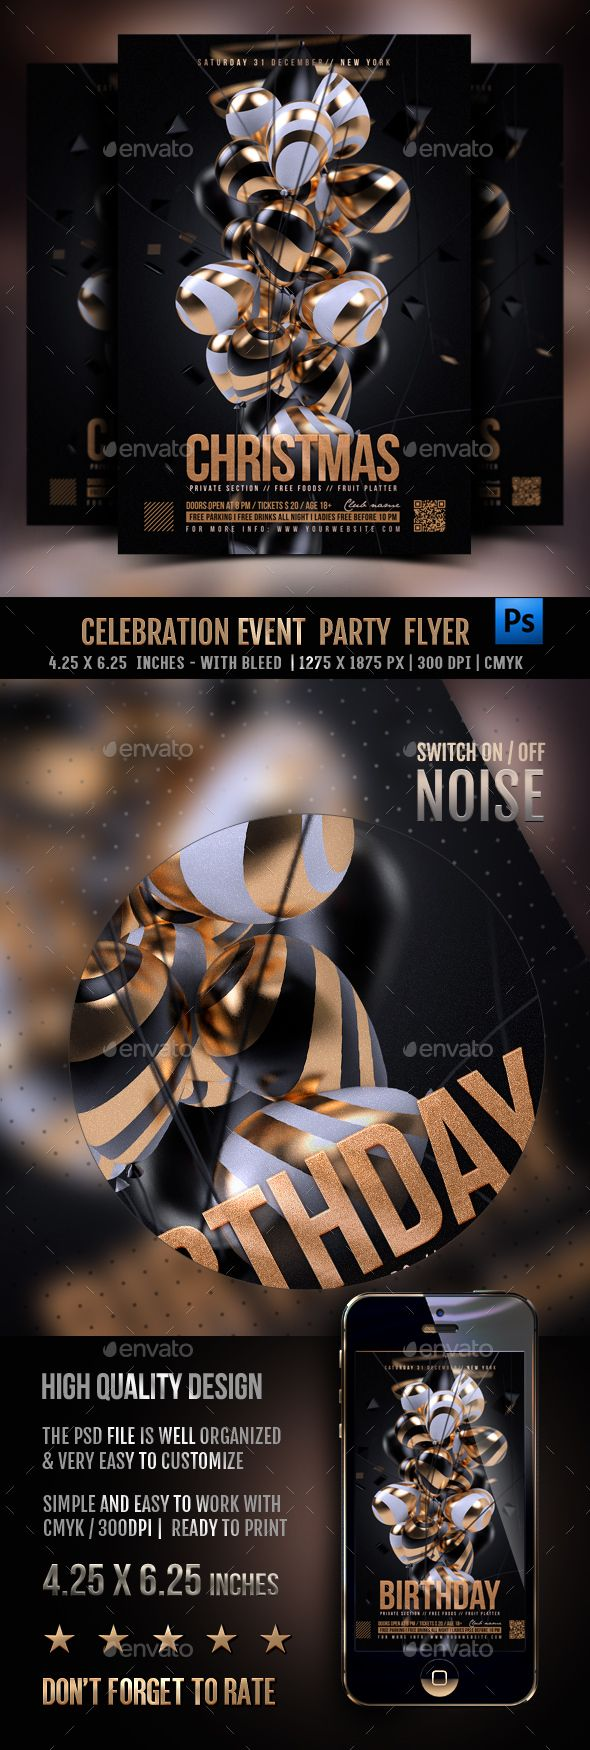 Celebration Event Party Flyer. Download: https://graphicriver.net/item/celebration-event-party-flyer/18761236?ref=thanhdesign